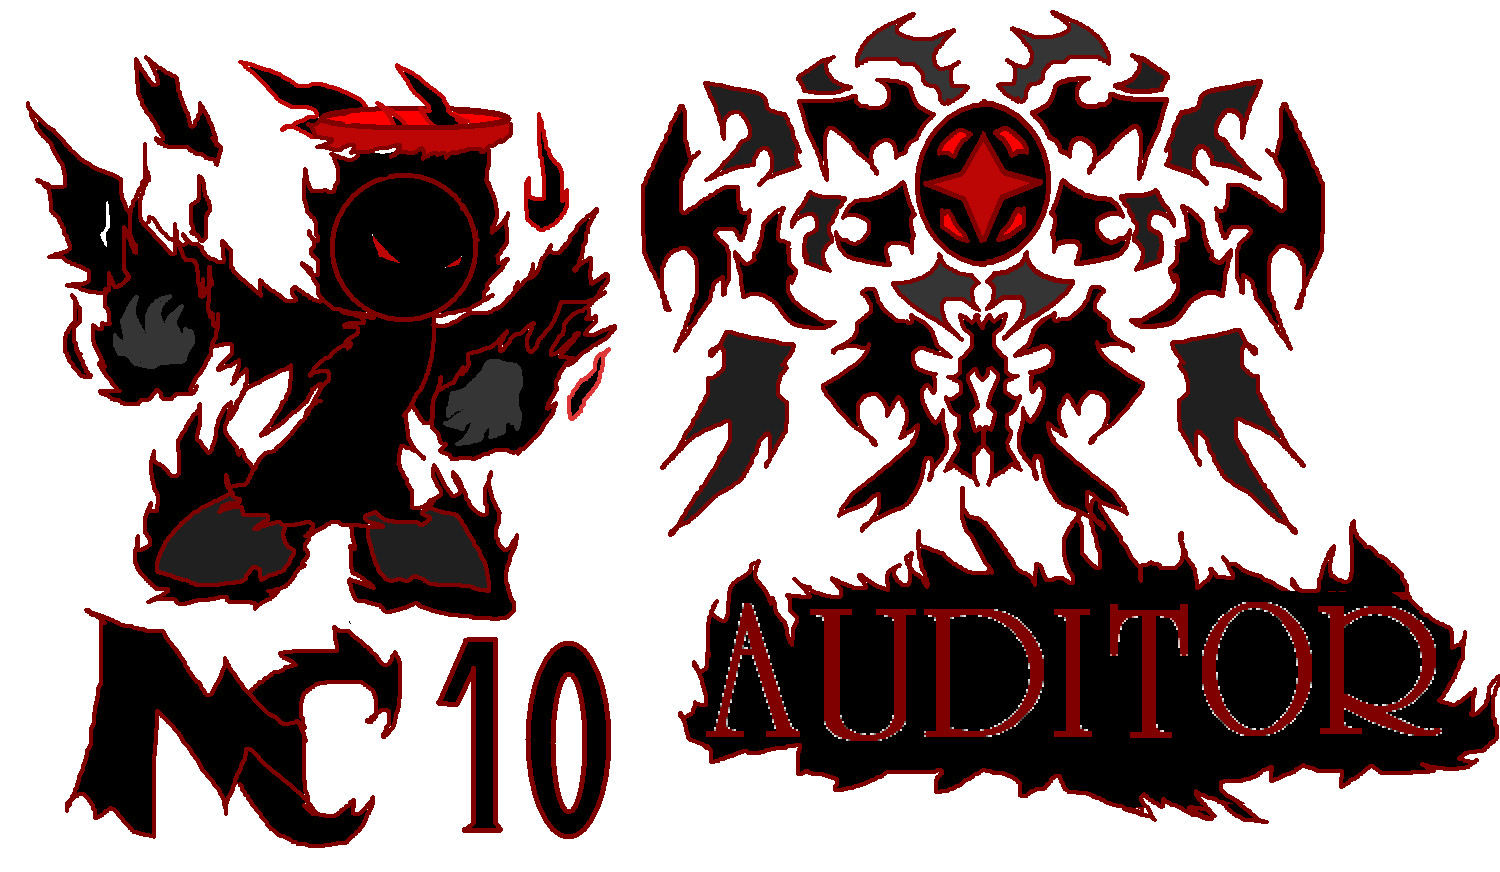 Auditor the darkness